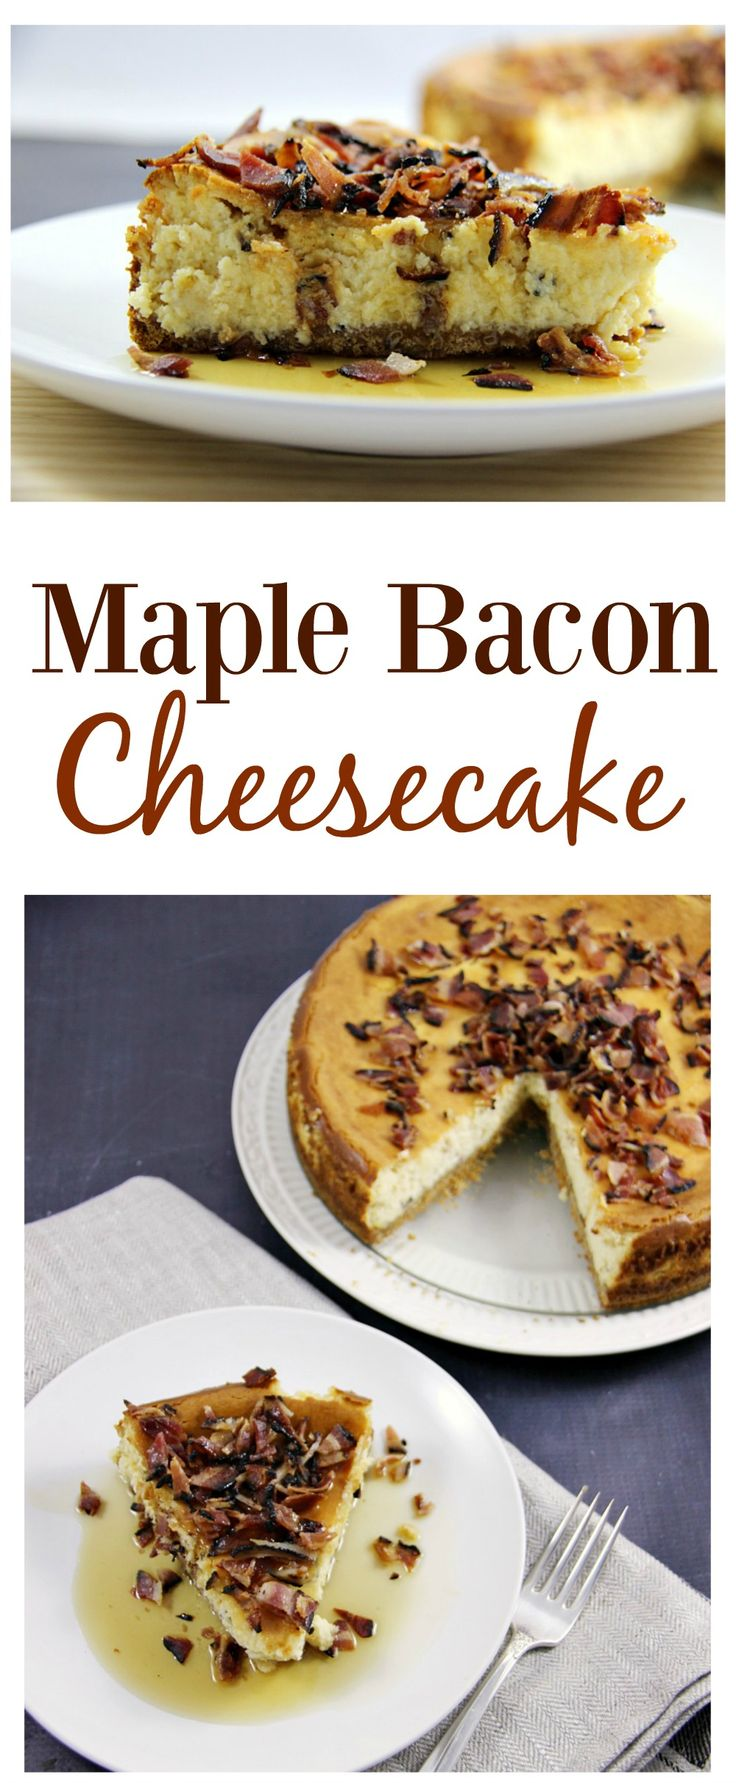 Maple Bacon Cheesecake #duBretonDelicious - Family Food And Travel